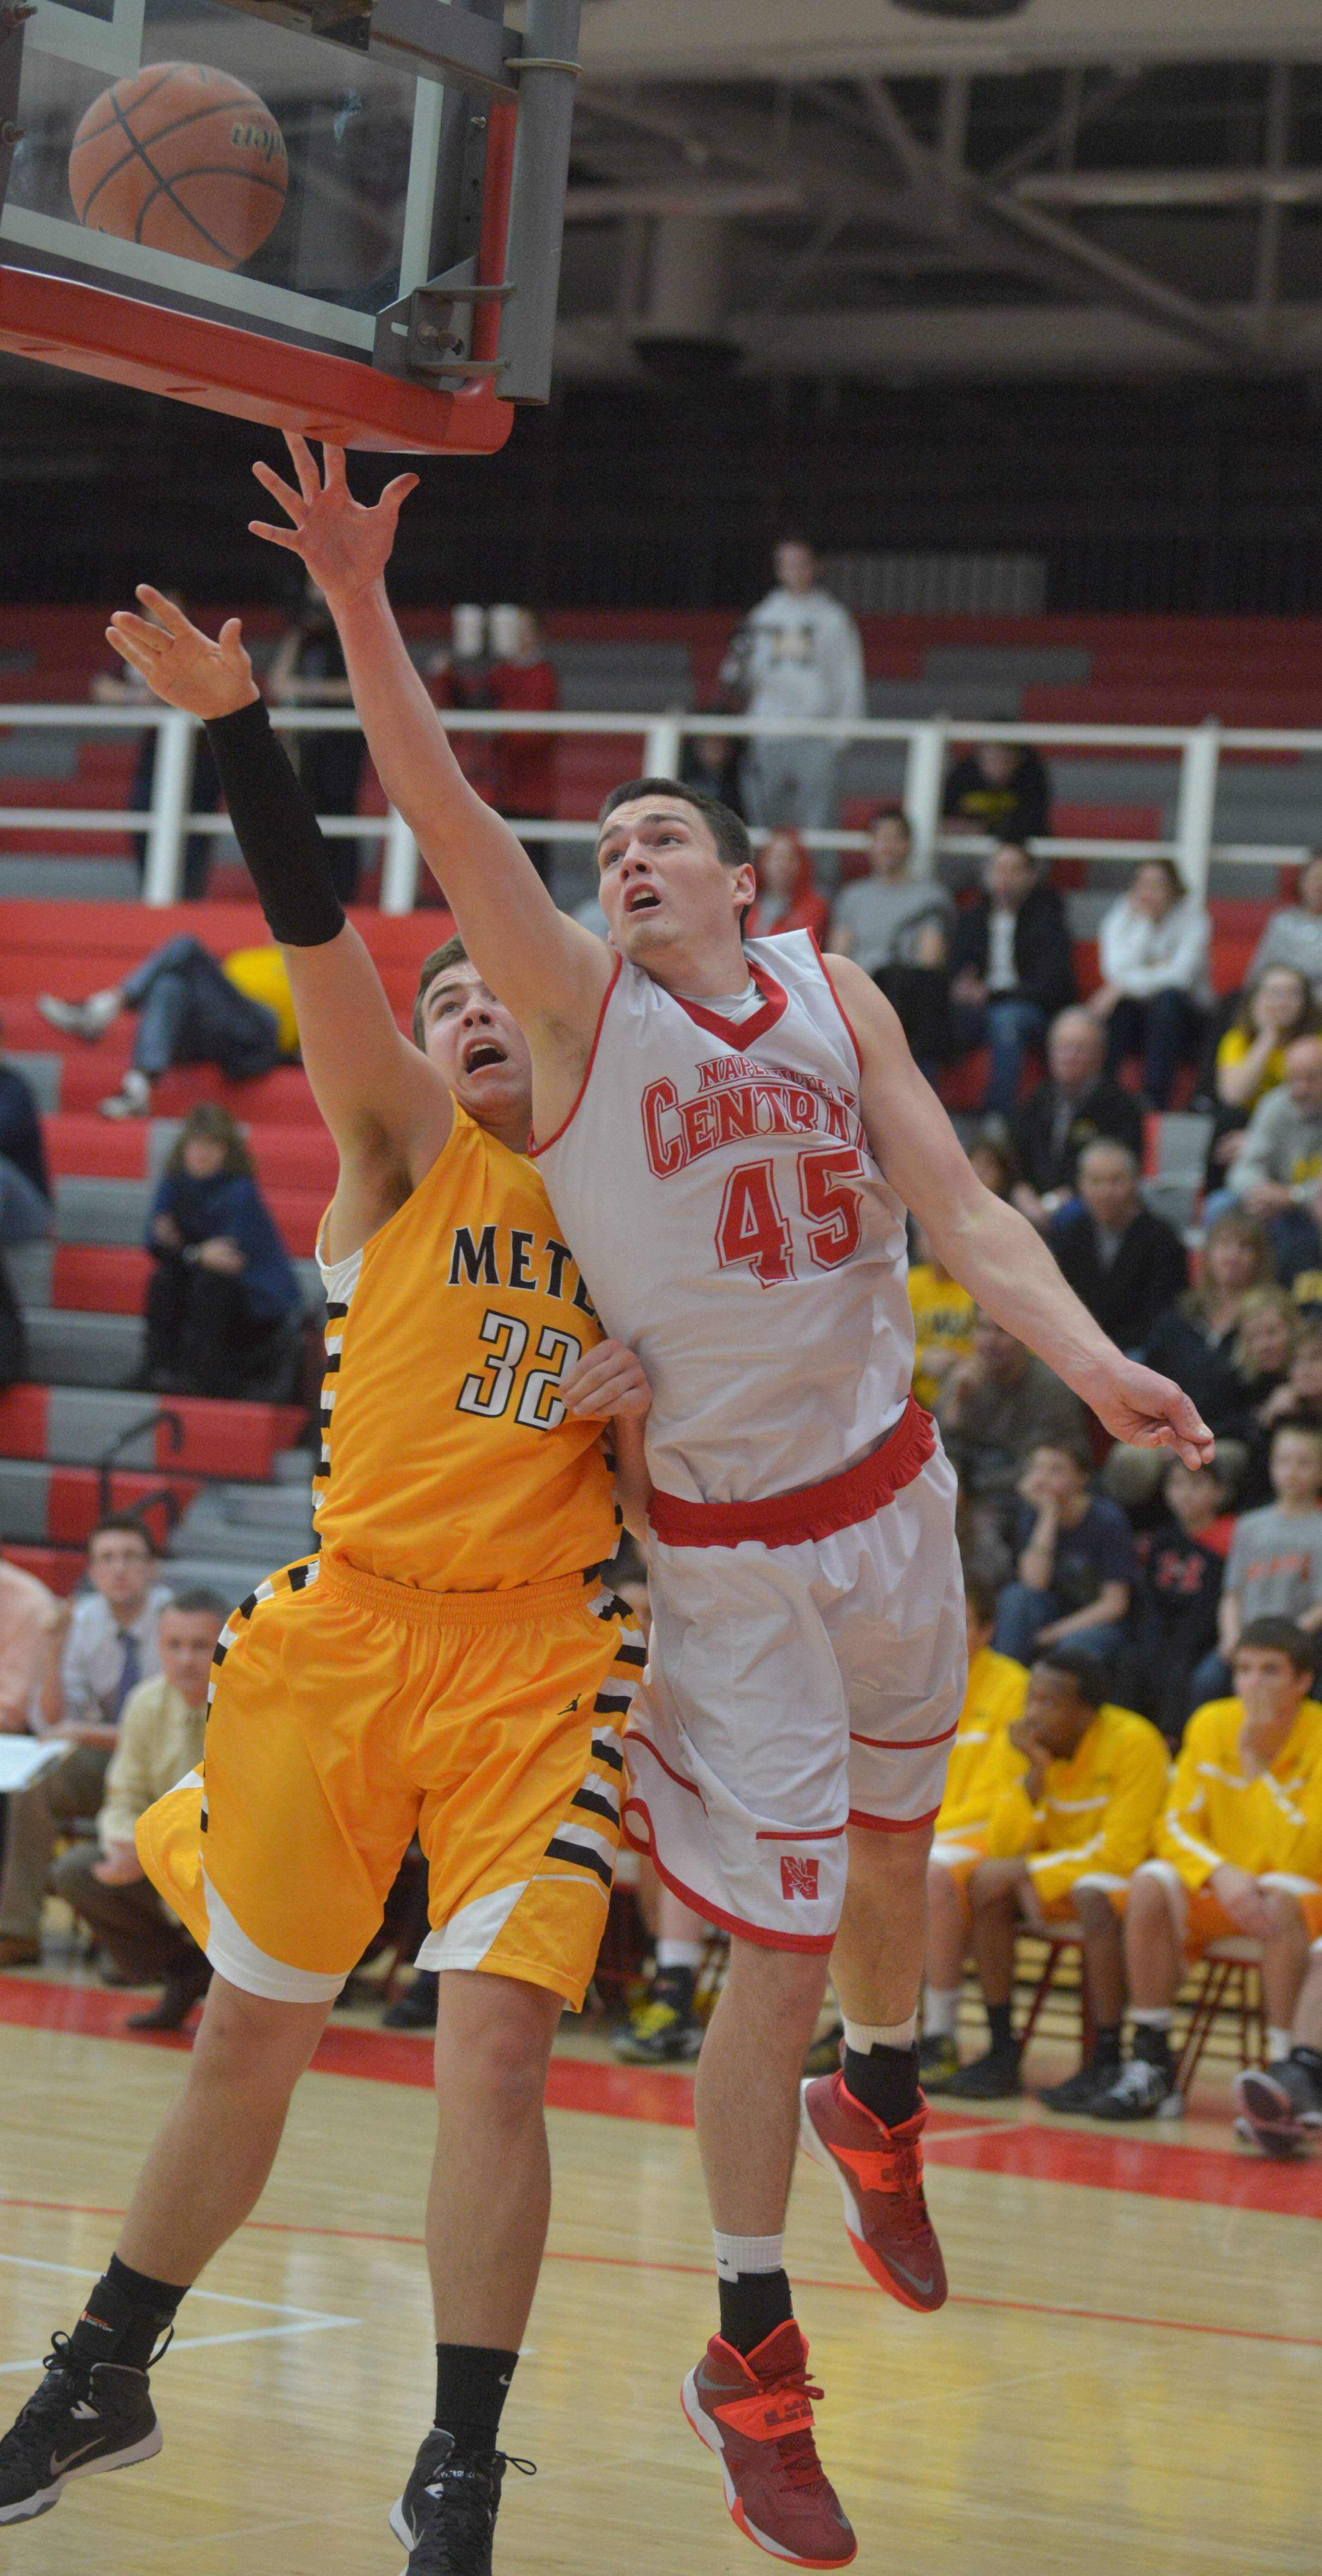 Naperville Central goes big to get big win